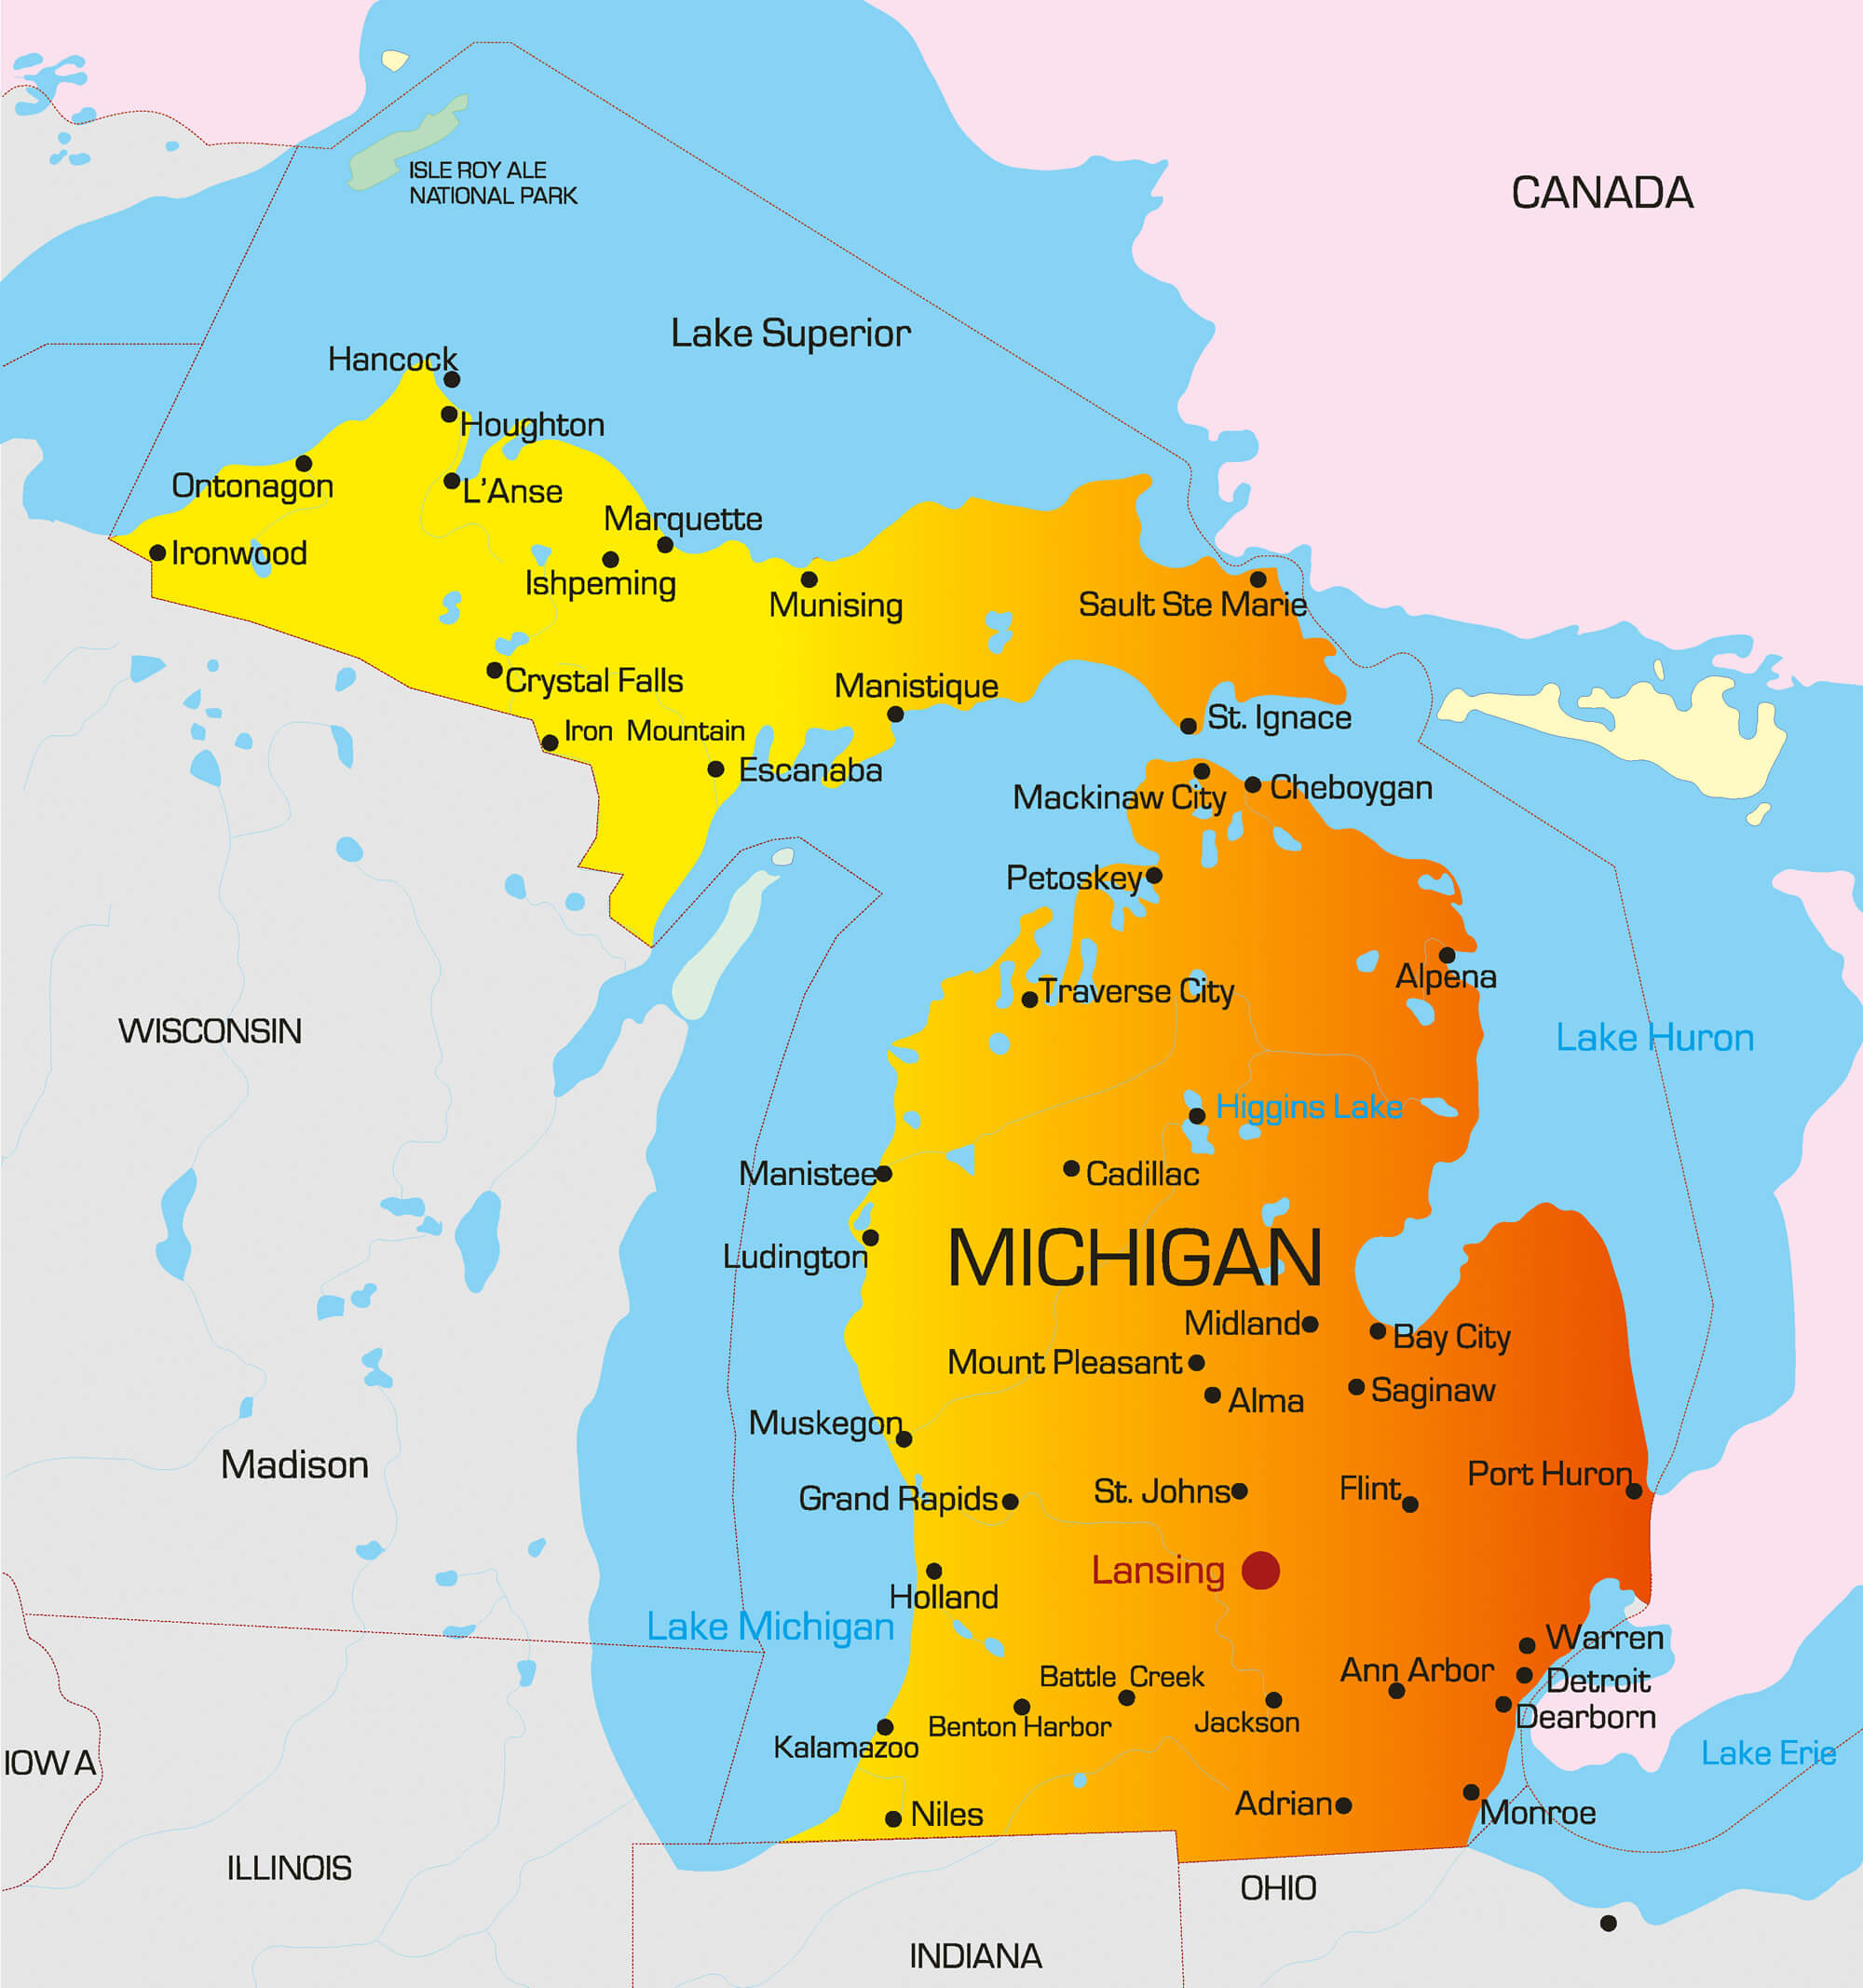 Michigan Map - Guide of the World